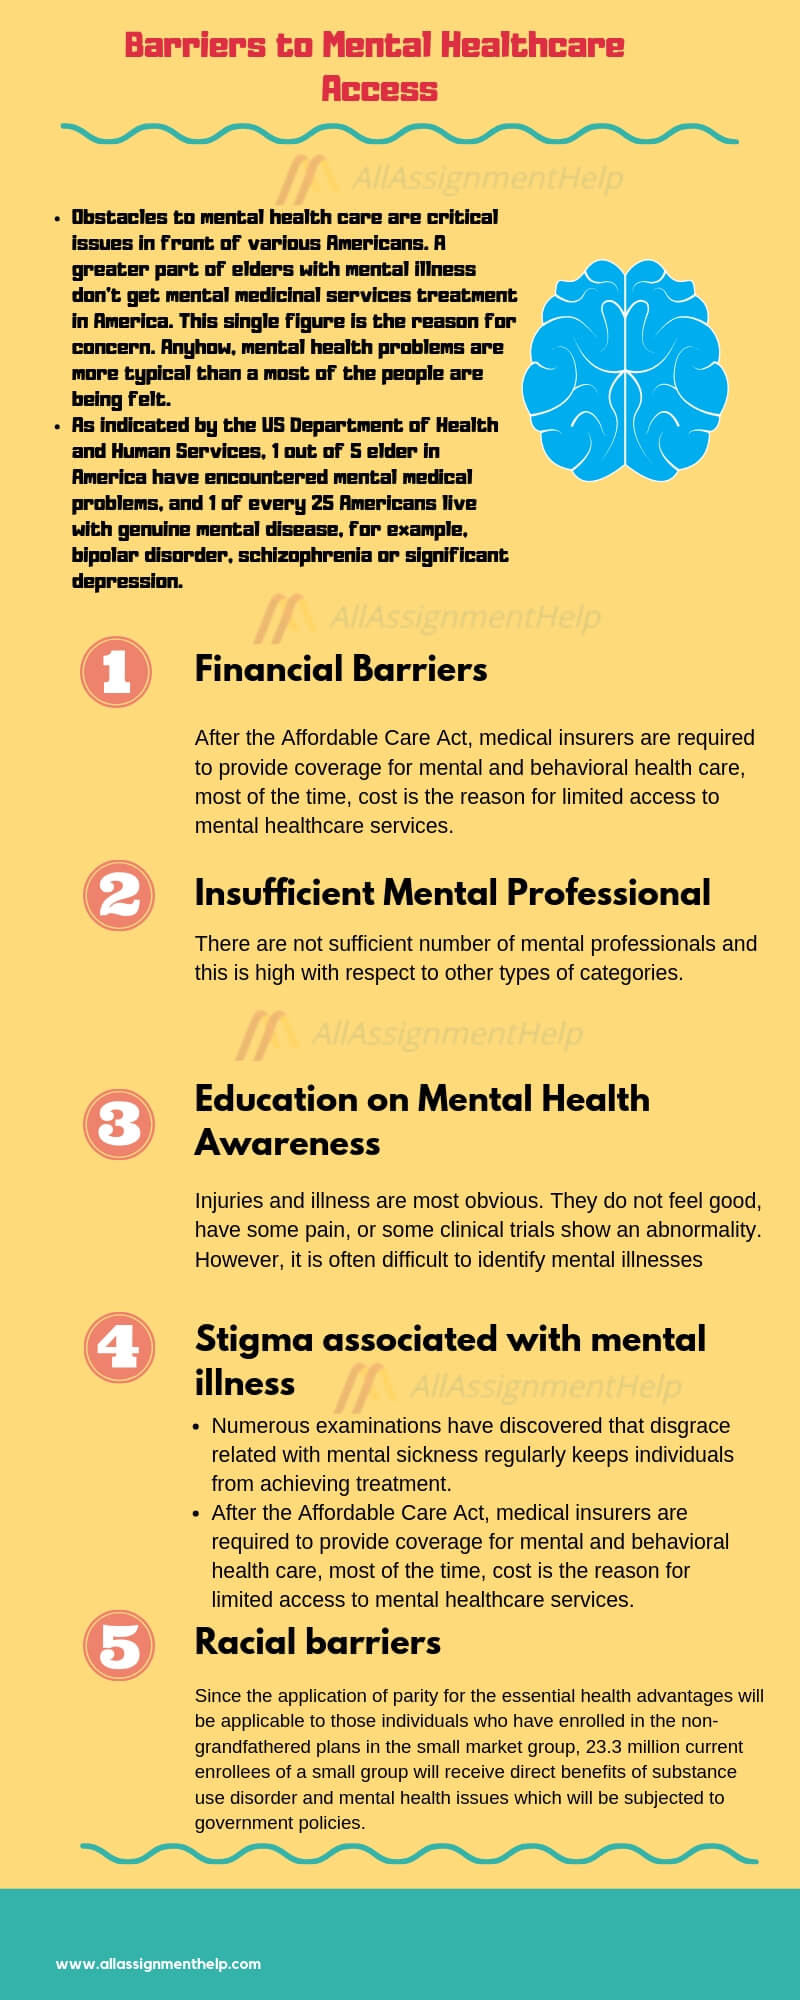 2. Barriers to Mental Healthcare Access